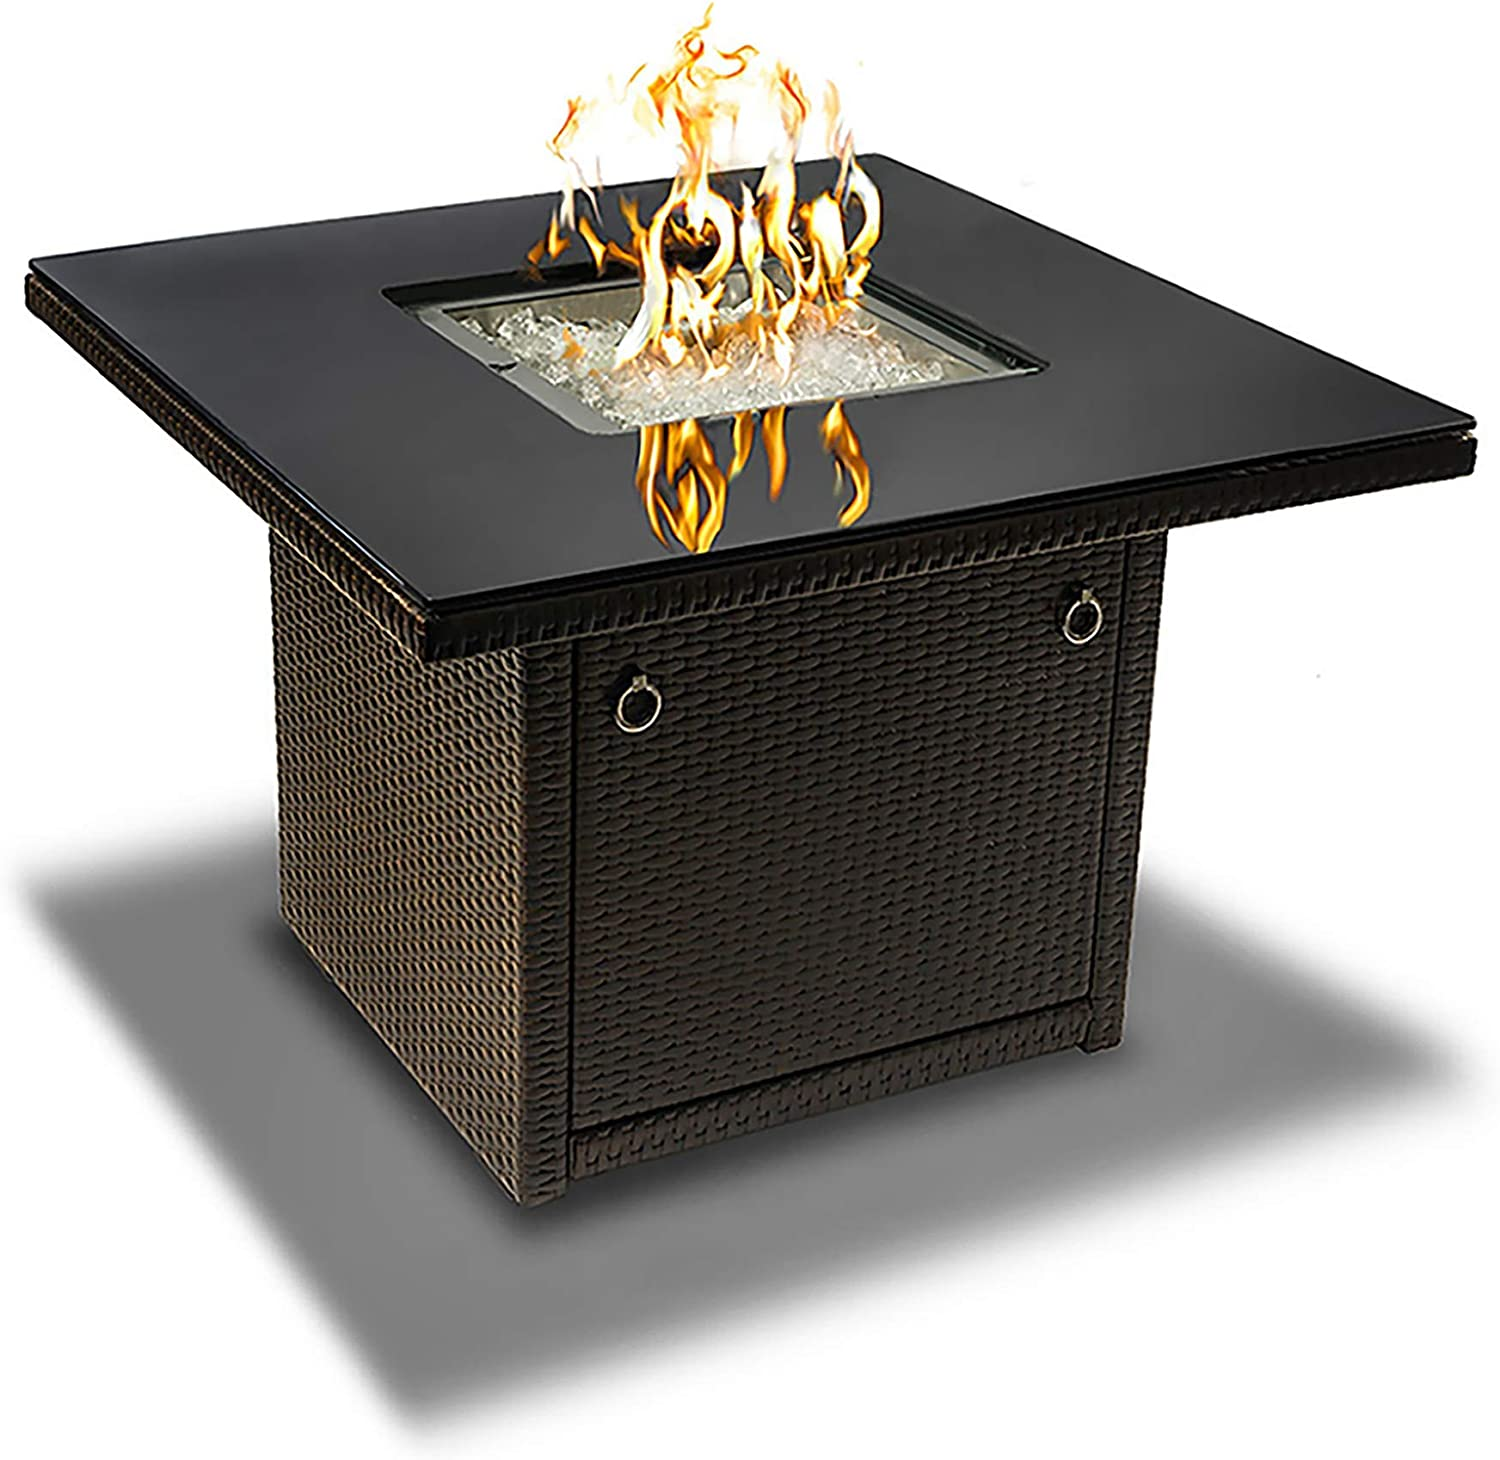 Outland Living 410 Series 36-Inch Outdoor Propane Gas Fire Pit Table